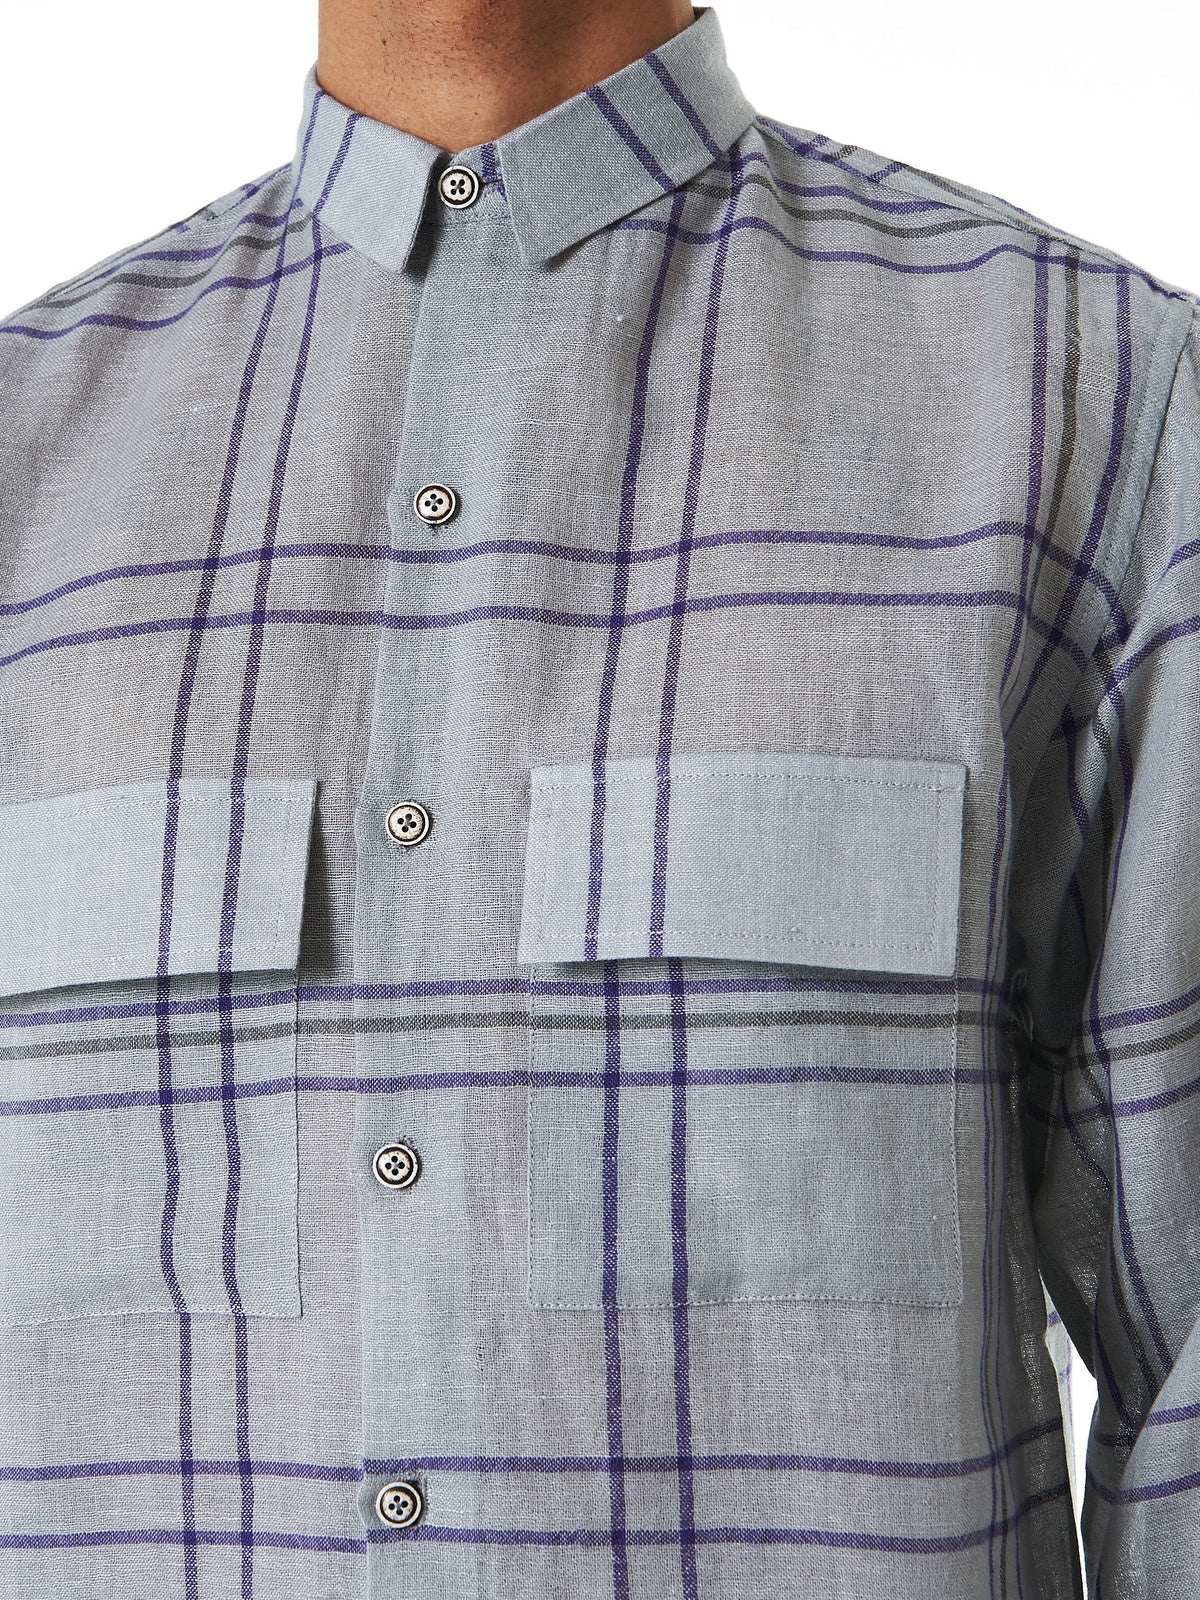 Double-Pocket Flannel (GAUCHO-PURPLERAIN-BURMATEAK) - H. Lorenzo